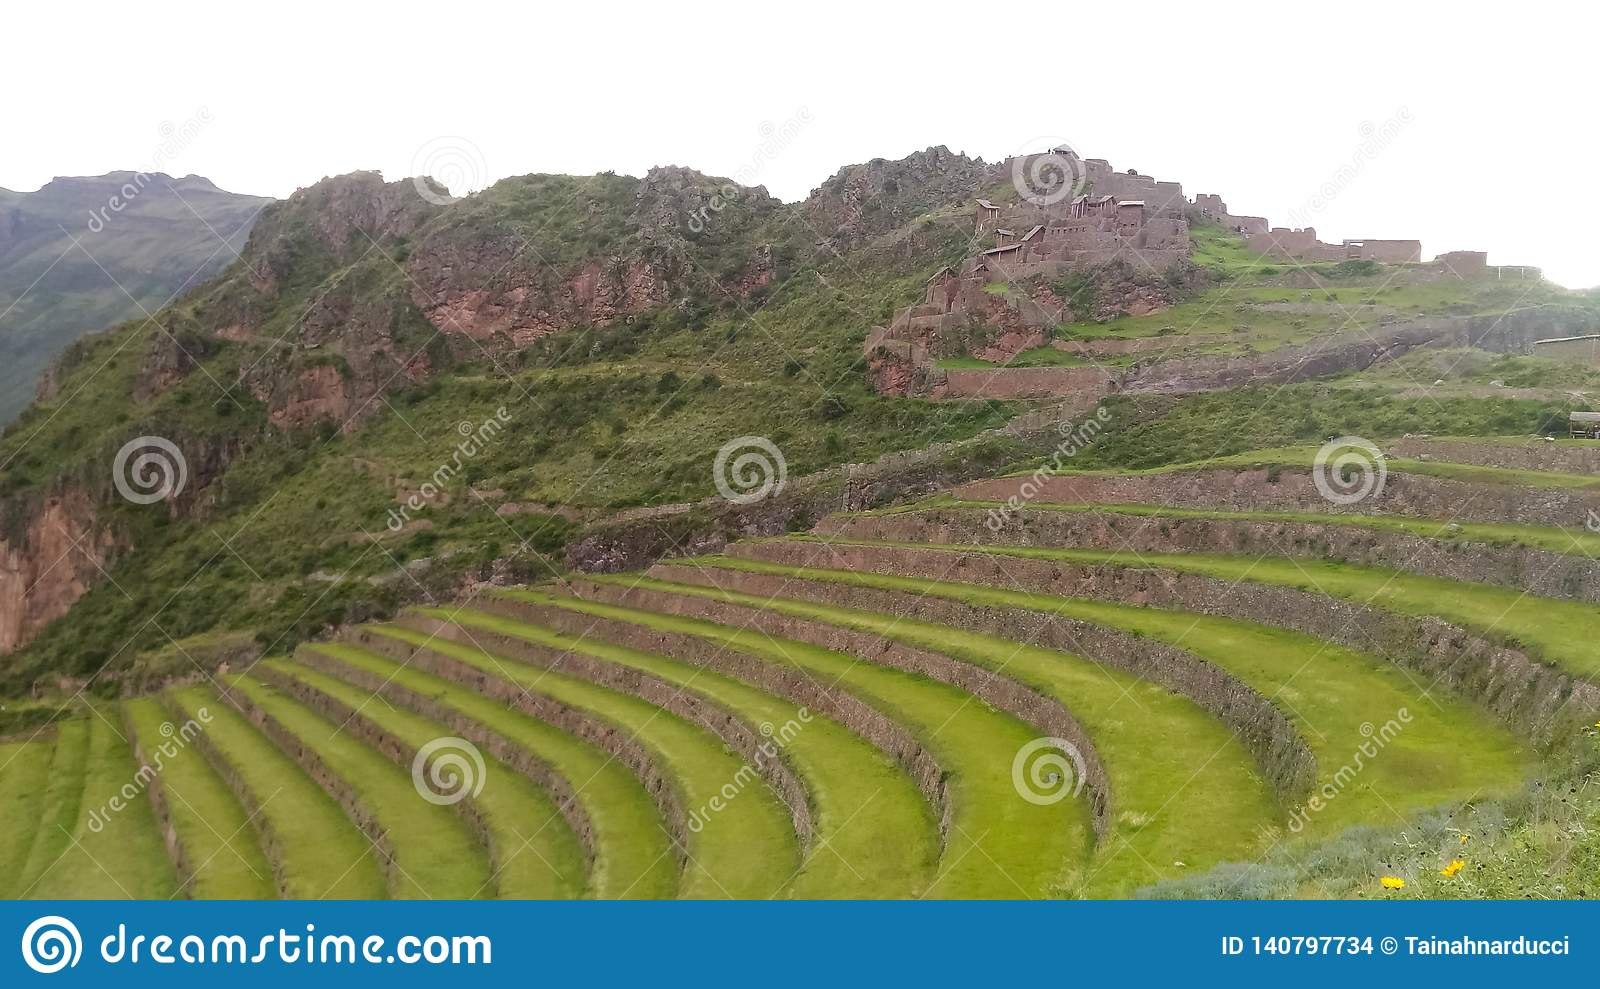 The most important archaeological site in sacred valley, Pisac, Peru, 02/07/2019